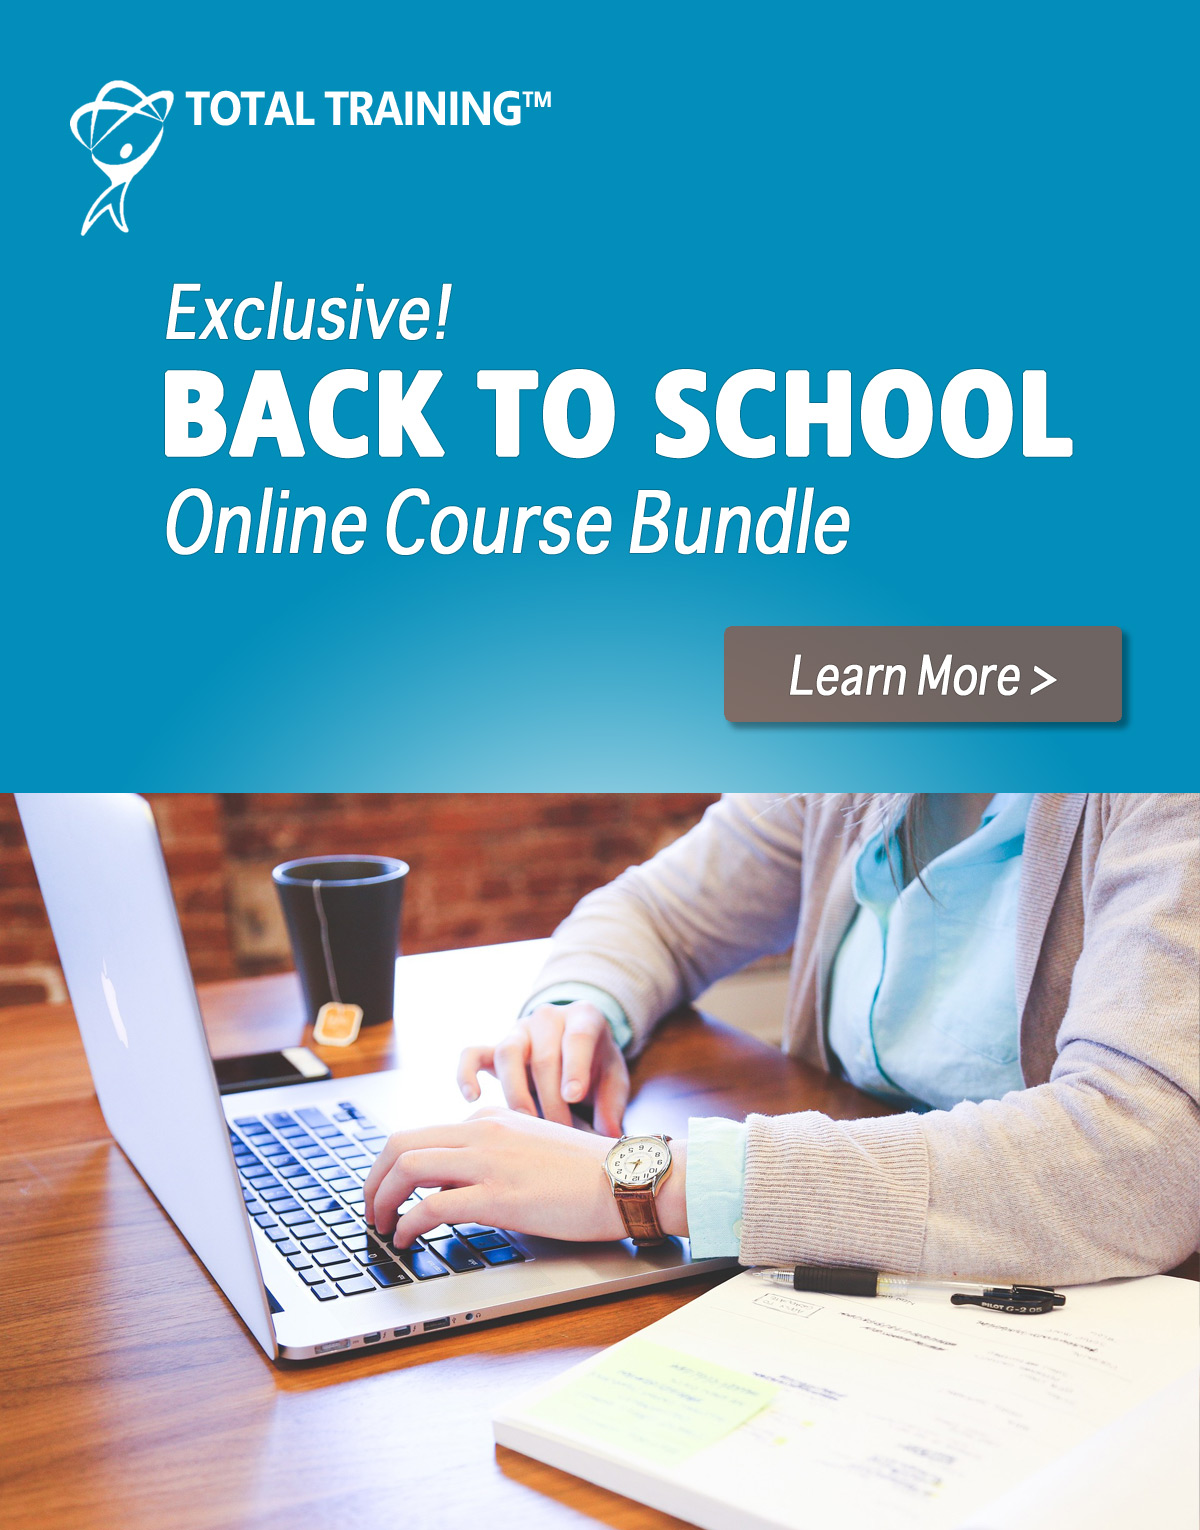 Back to School bundle from Total Training